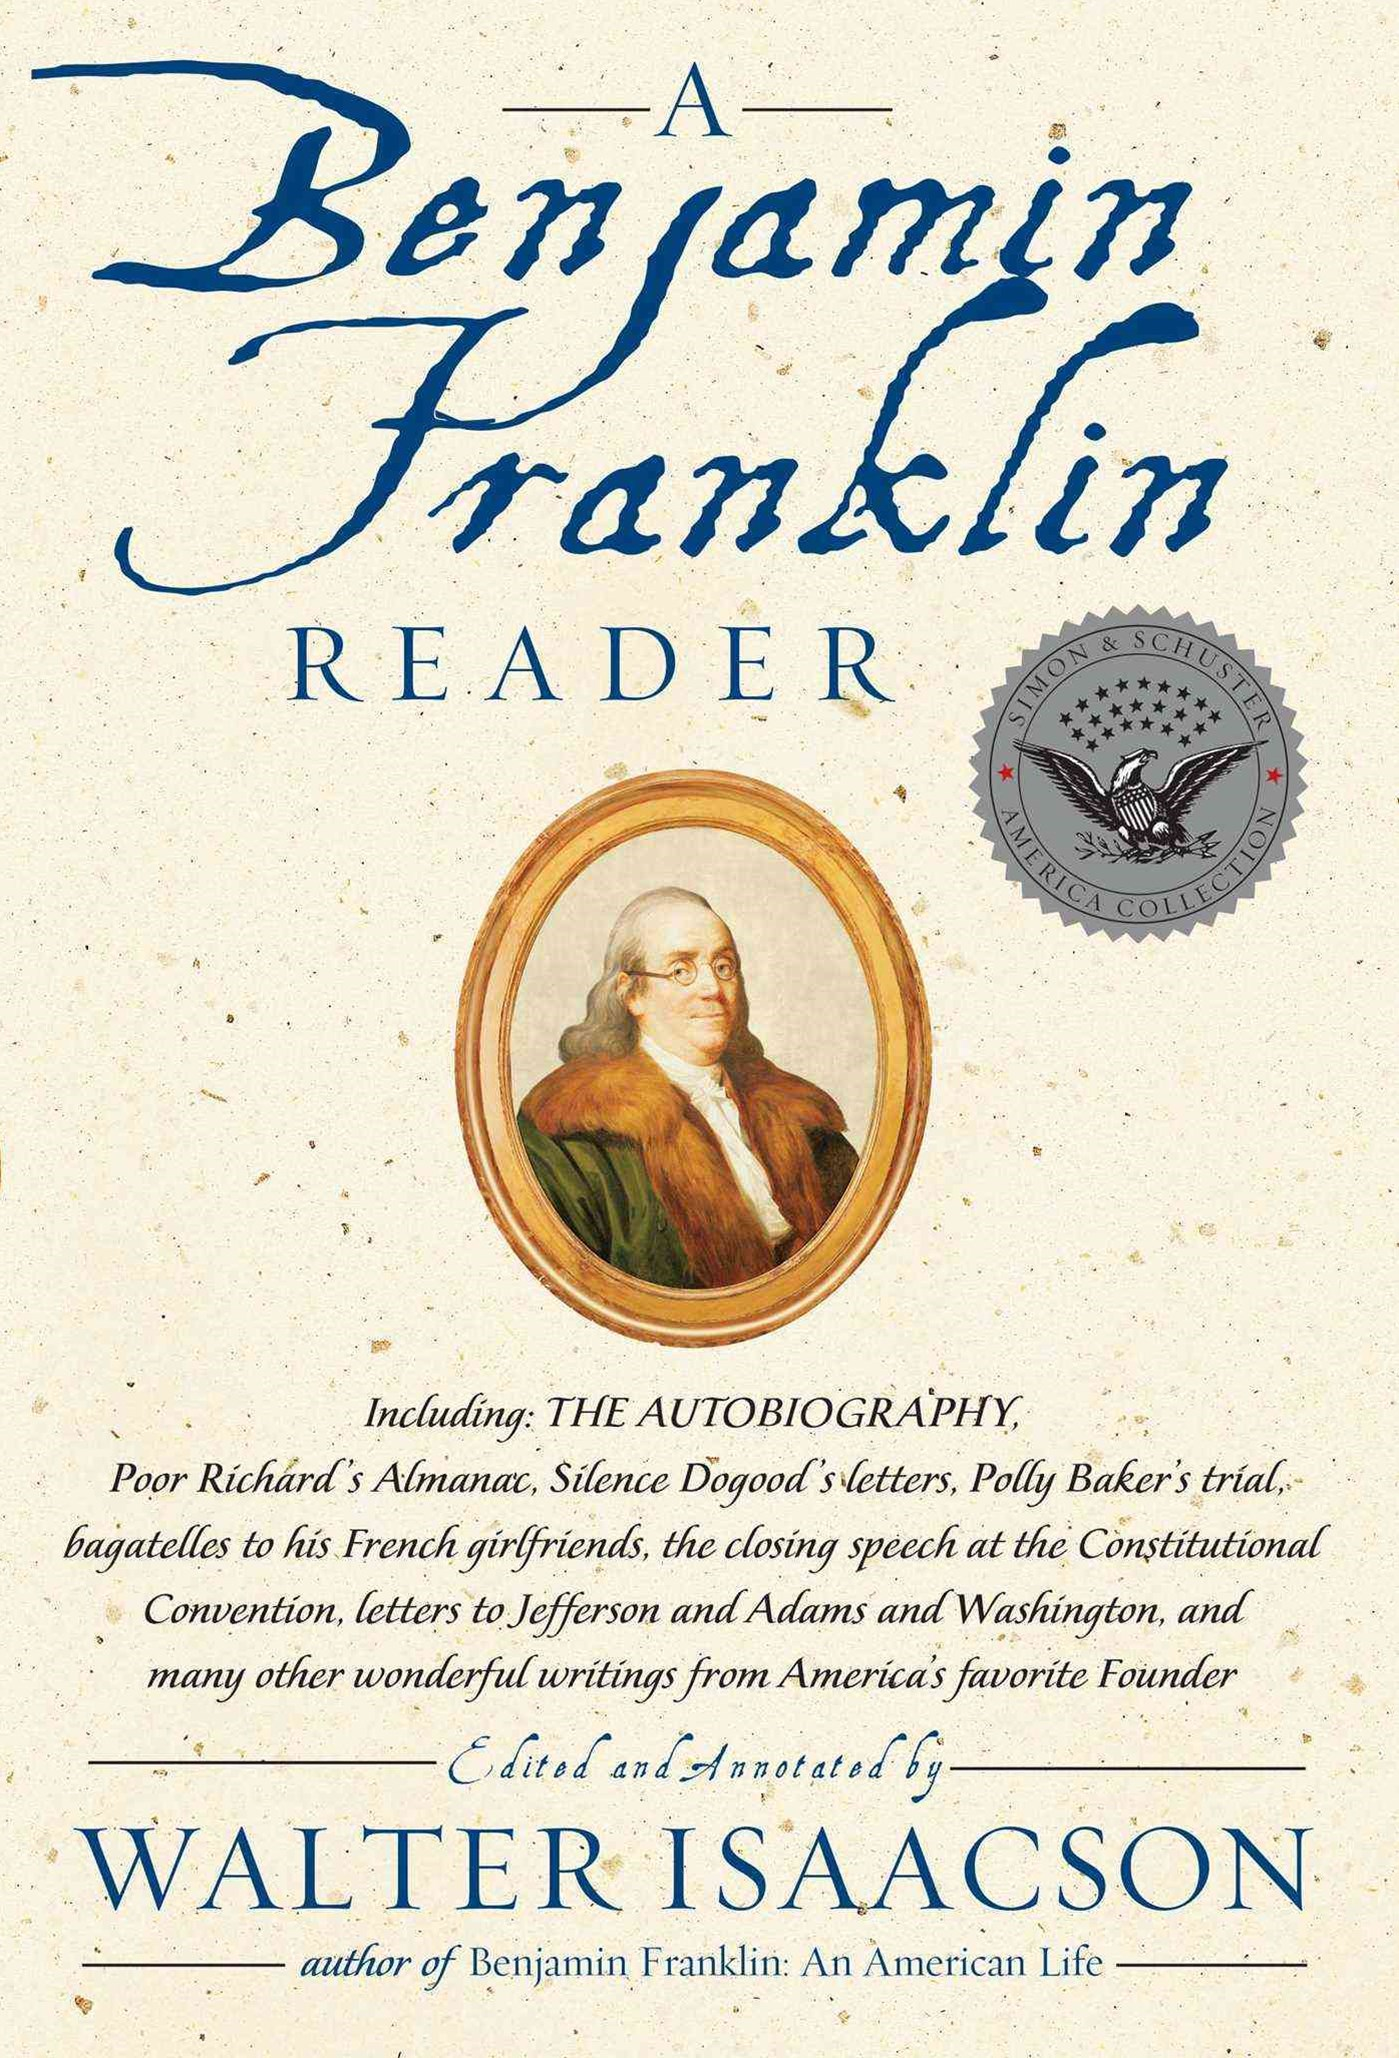 A Benjamin Franklin Reader: The Autobiography